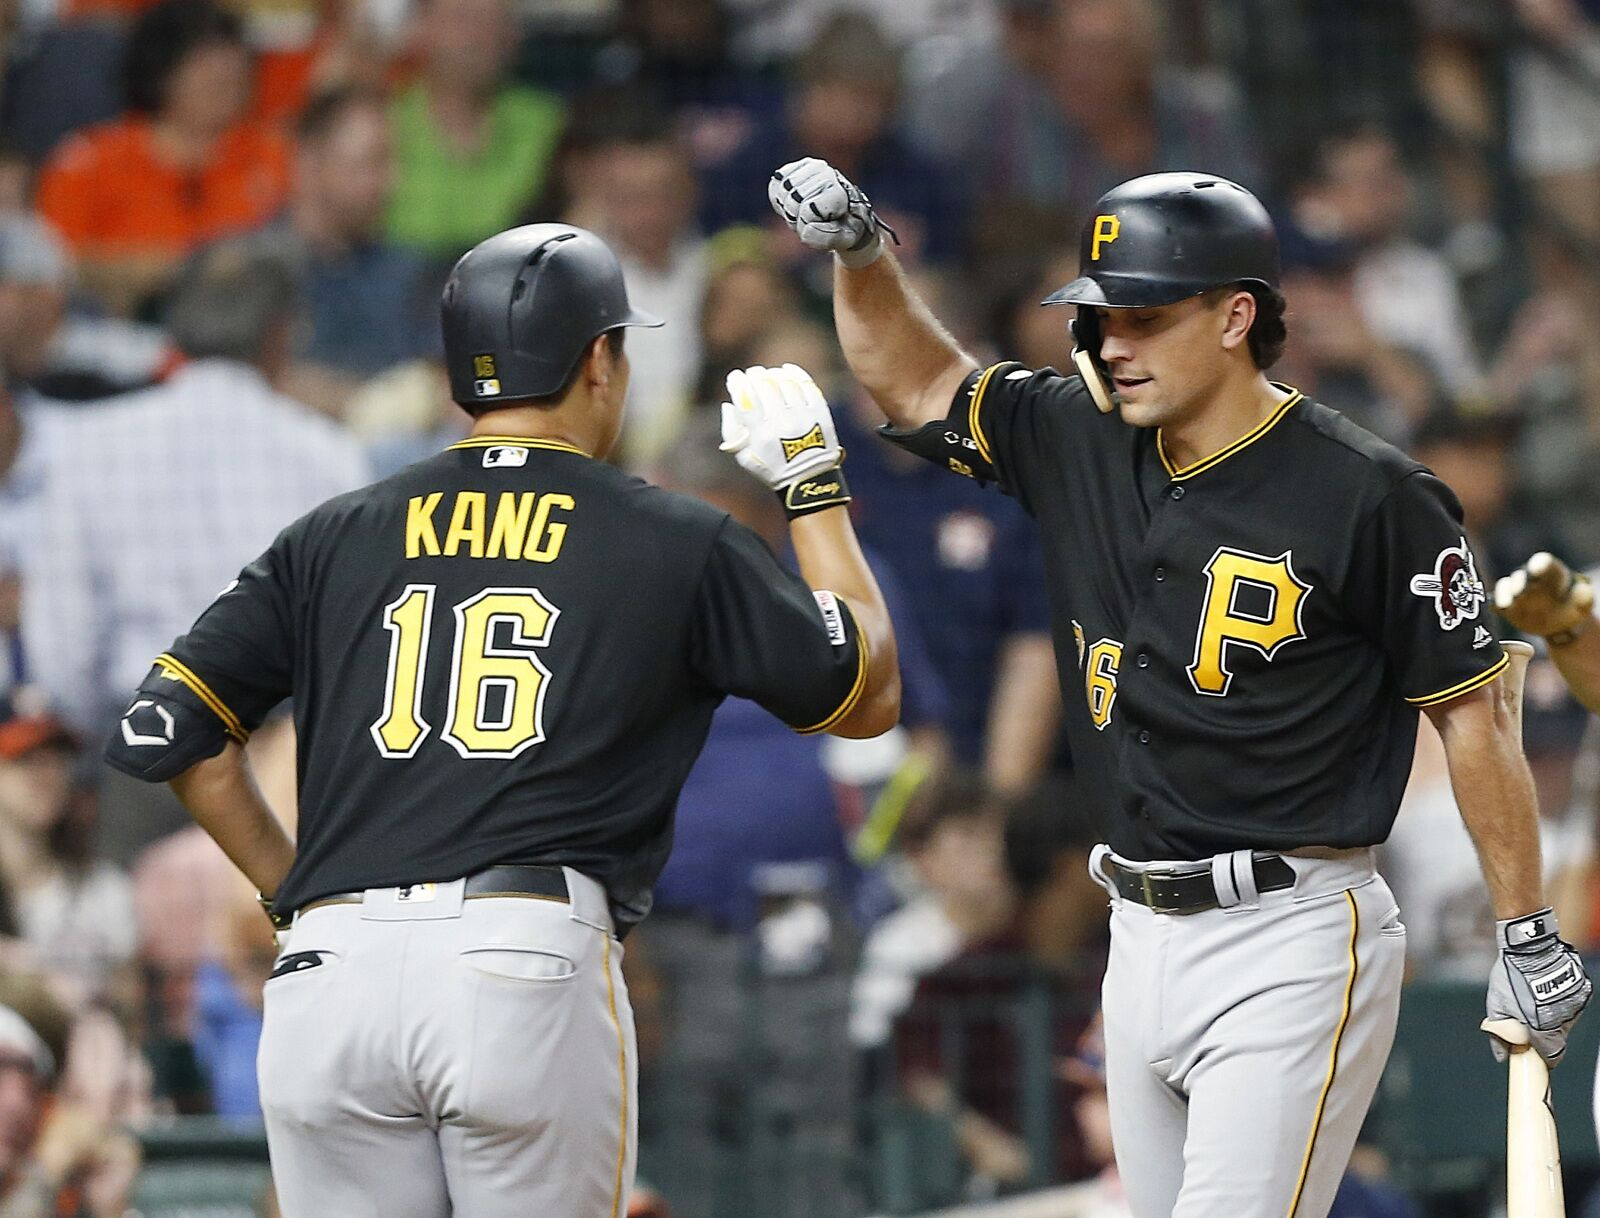 Pittsburgh Pirates Offense Explodes In Victory Over The Astros